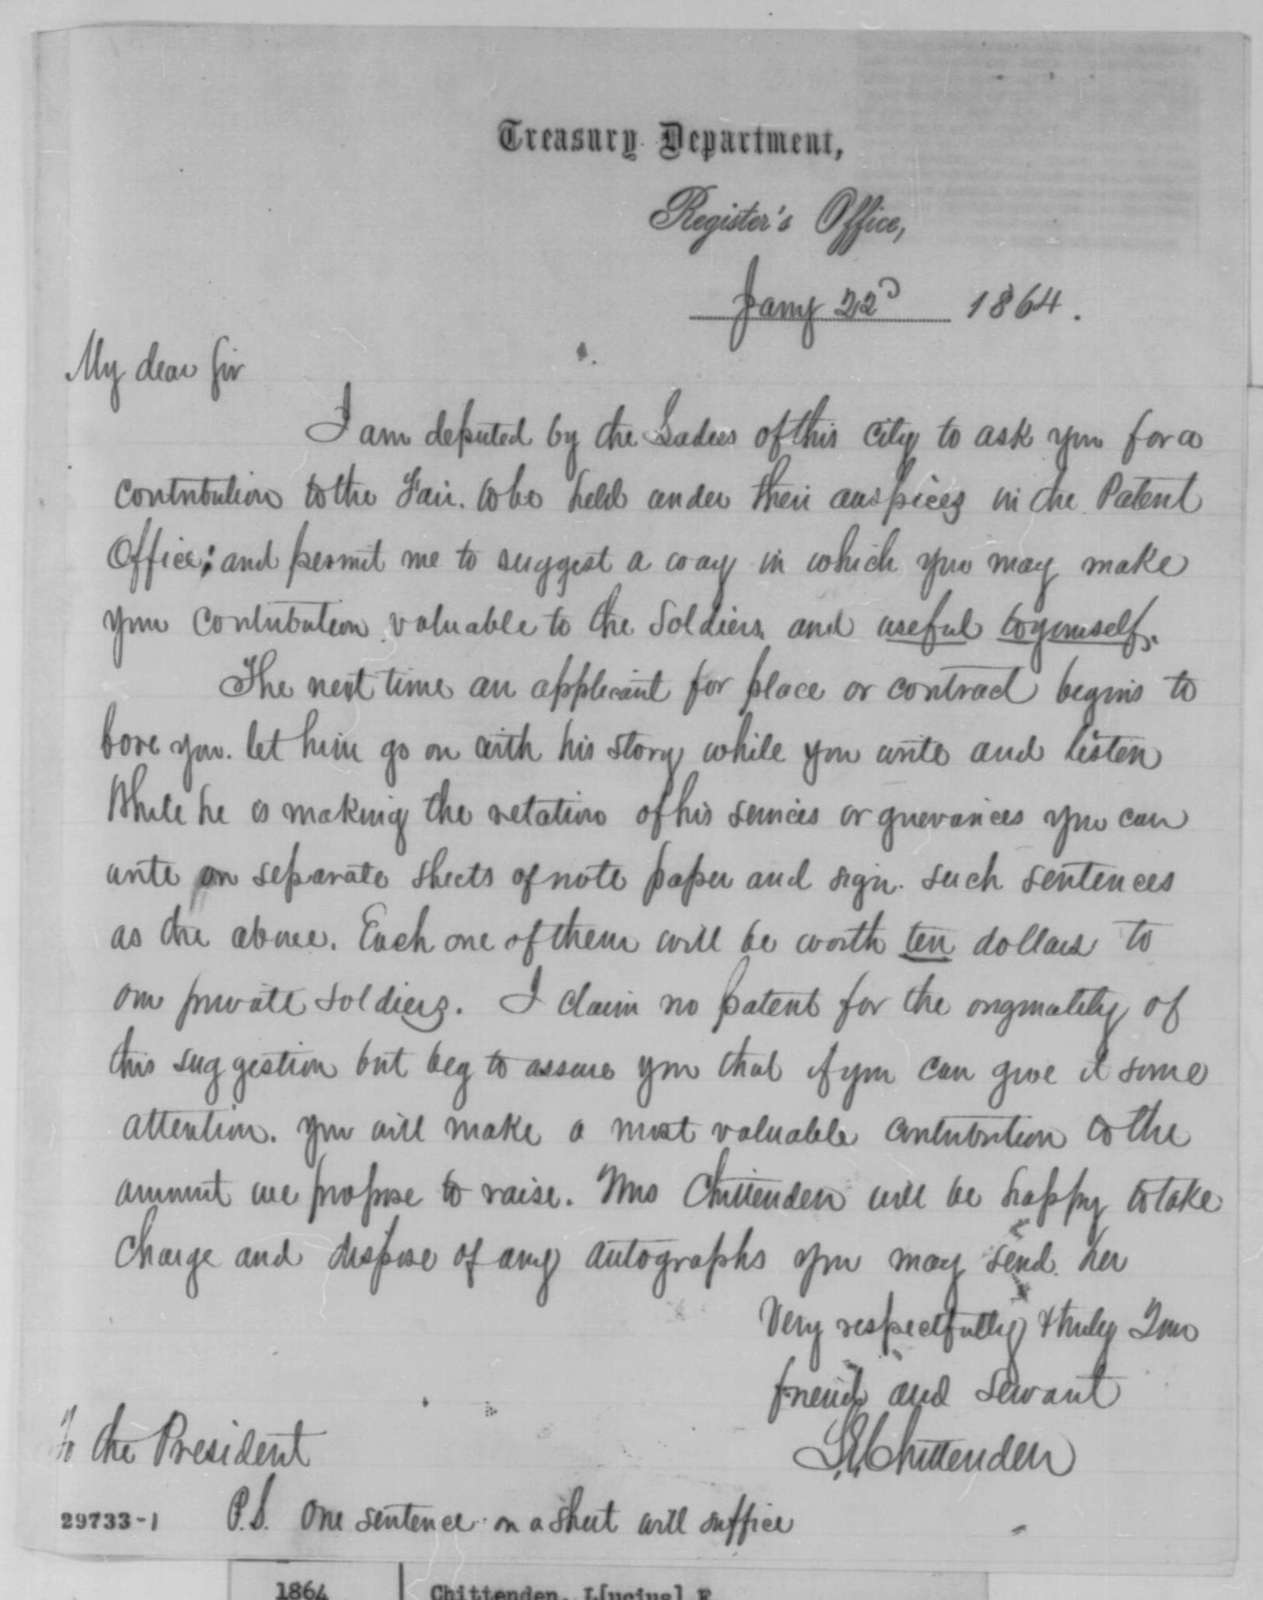 Lucius E. Chittenden to Abraham Lincoln, Friday, January 22, 1864  (Requests contribution to Patent Office Fair)